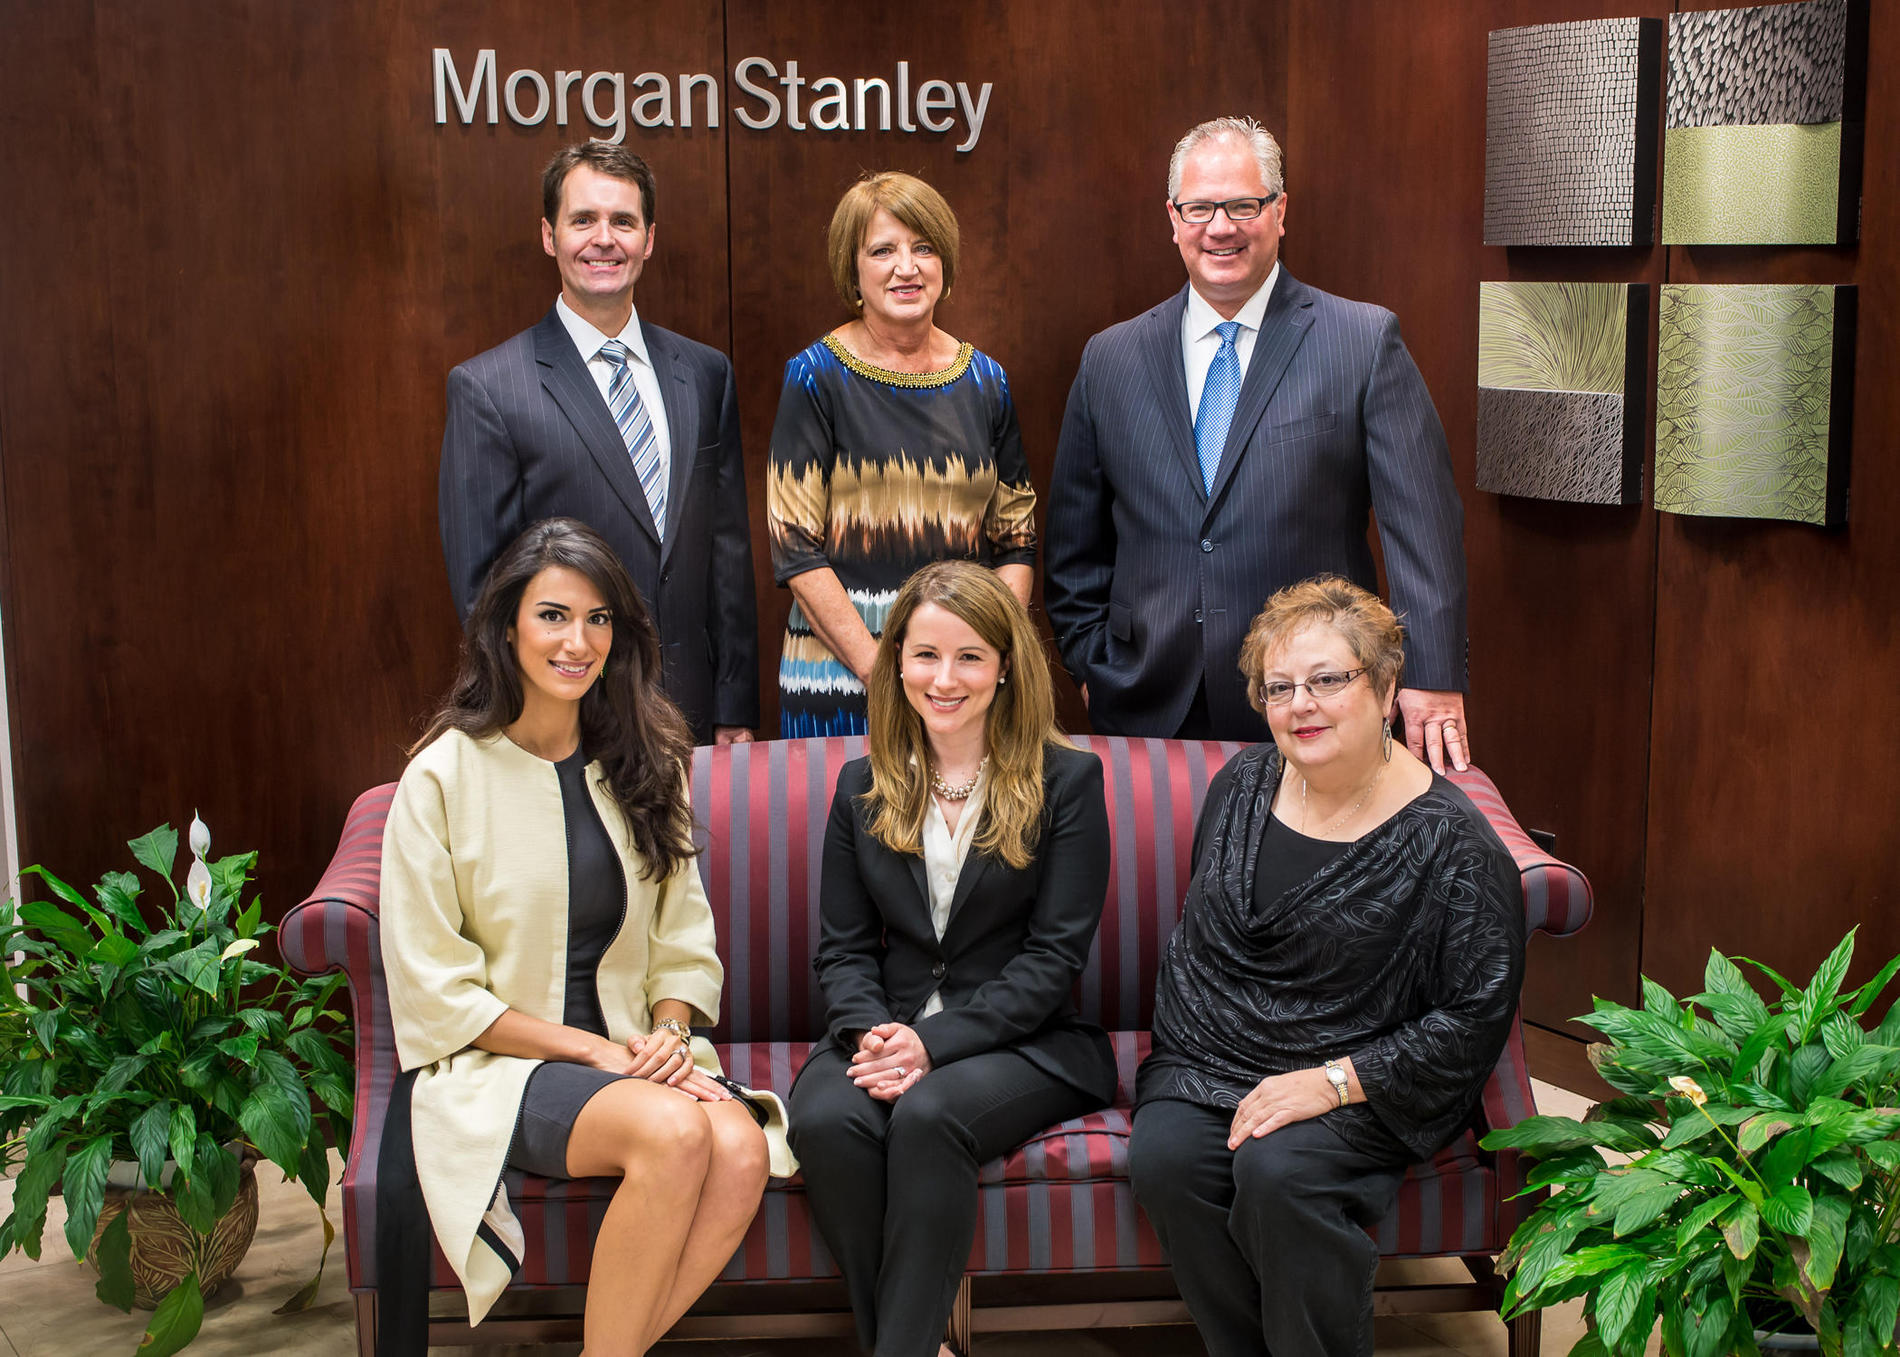 The Waypoint Group | Canfield, OH | Morgan Stanley Wealth Management